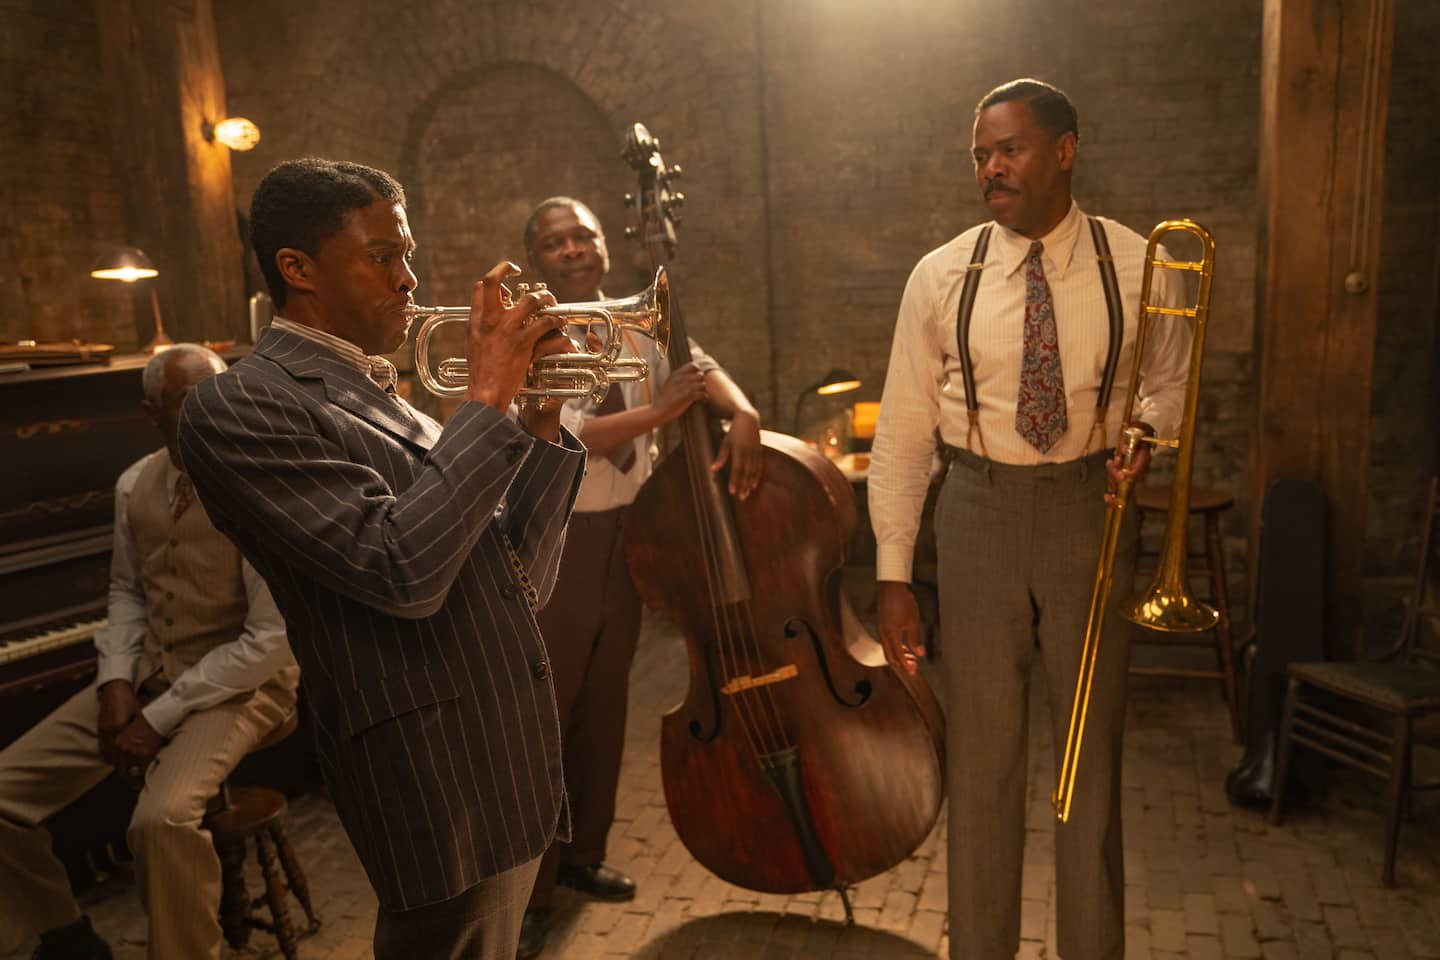 Working with Chadwick Boseman on 'Ma Rainey's Black Bottom' taught Colman Domingo to treat each role 'as the last one'